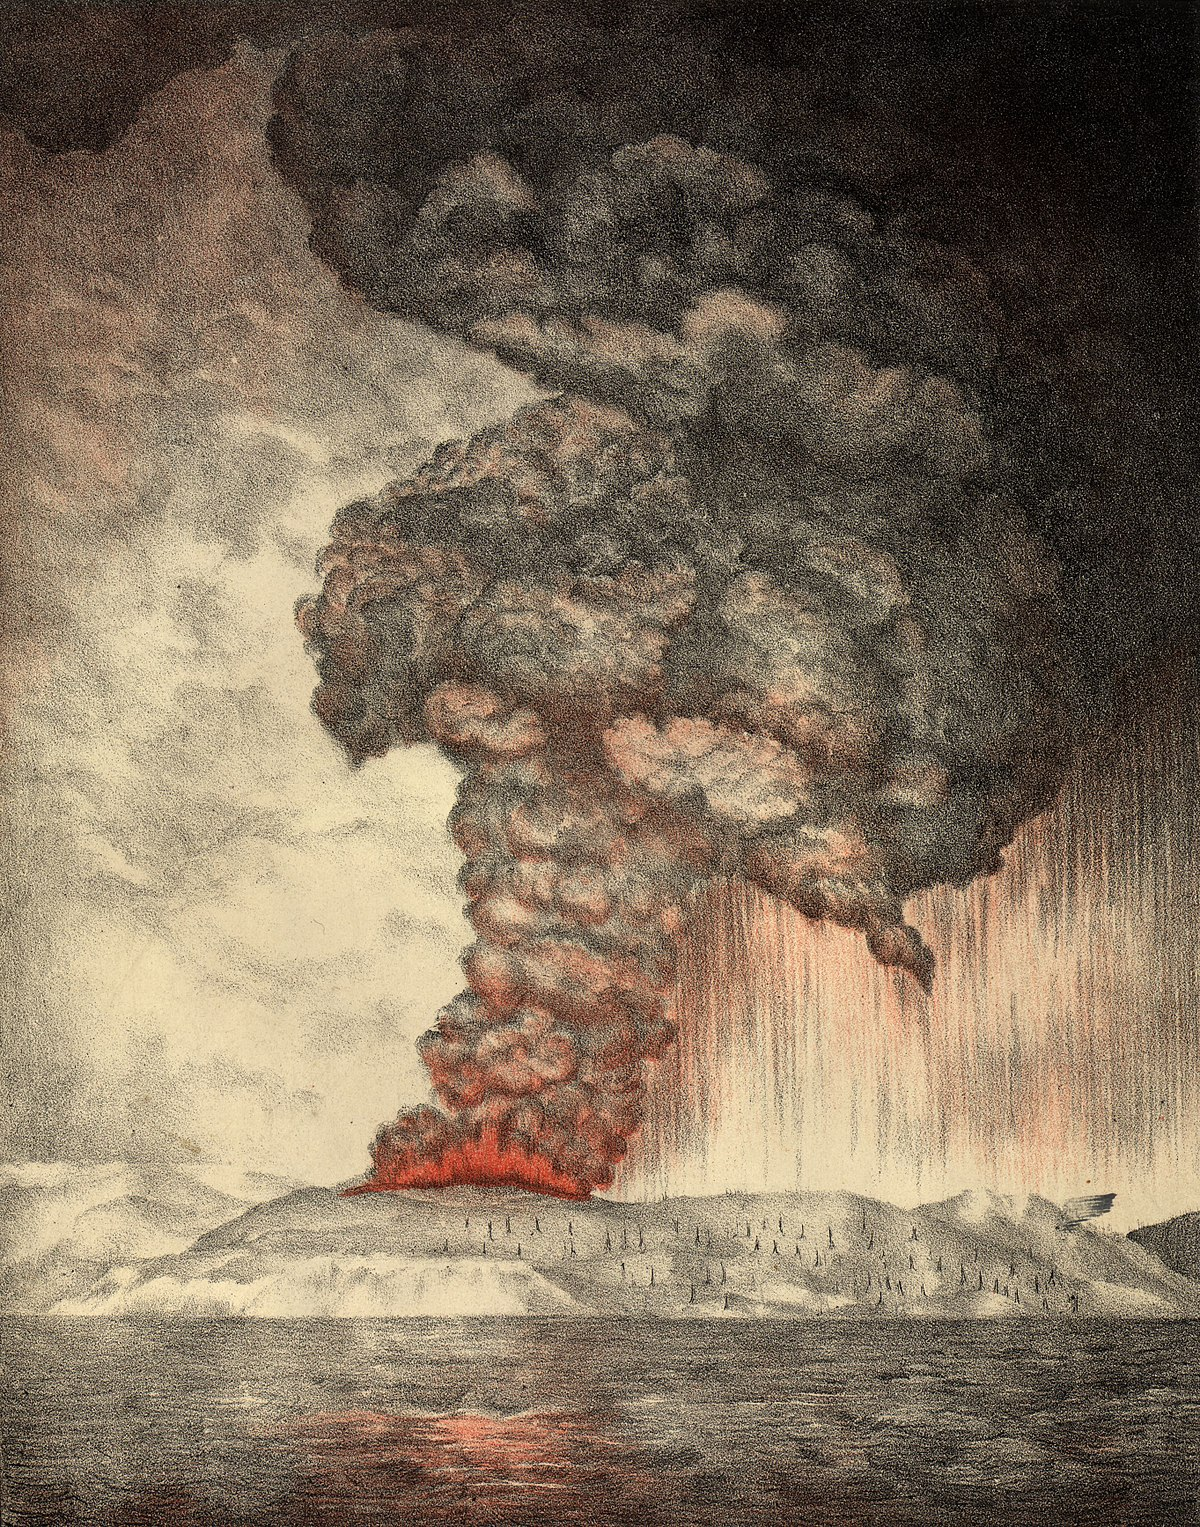 Litografía The eruption of Krakatoa, and subsequent phenomena. Autores: Parker & Coward.